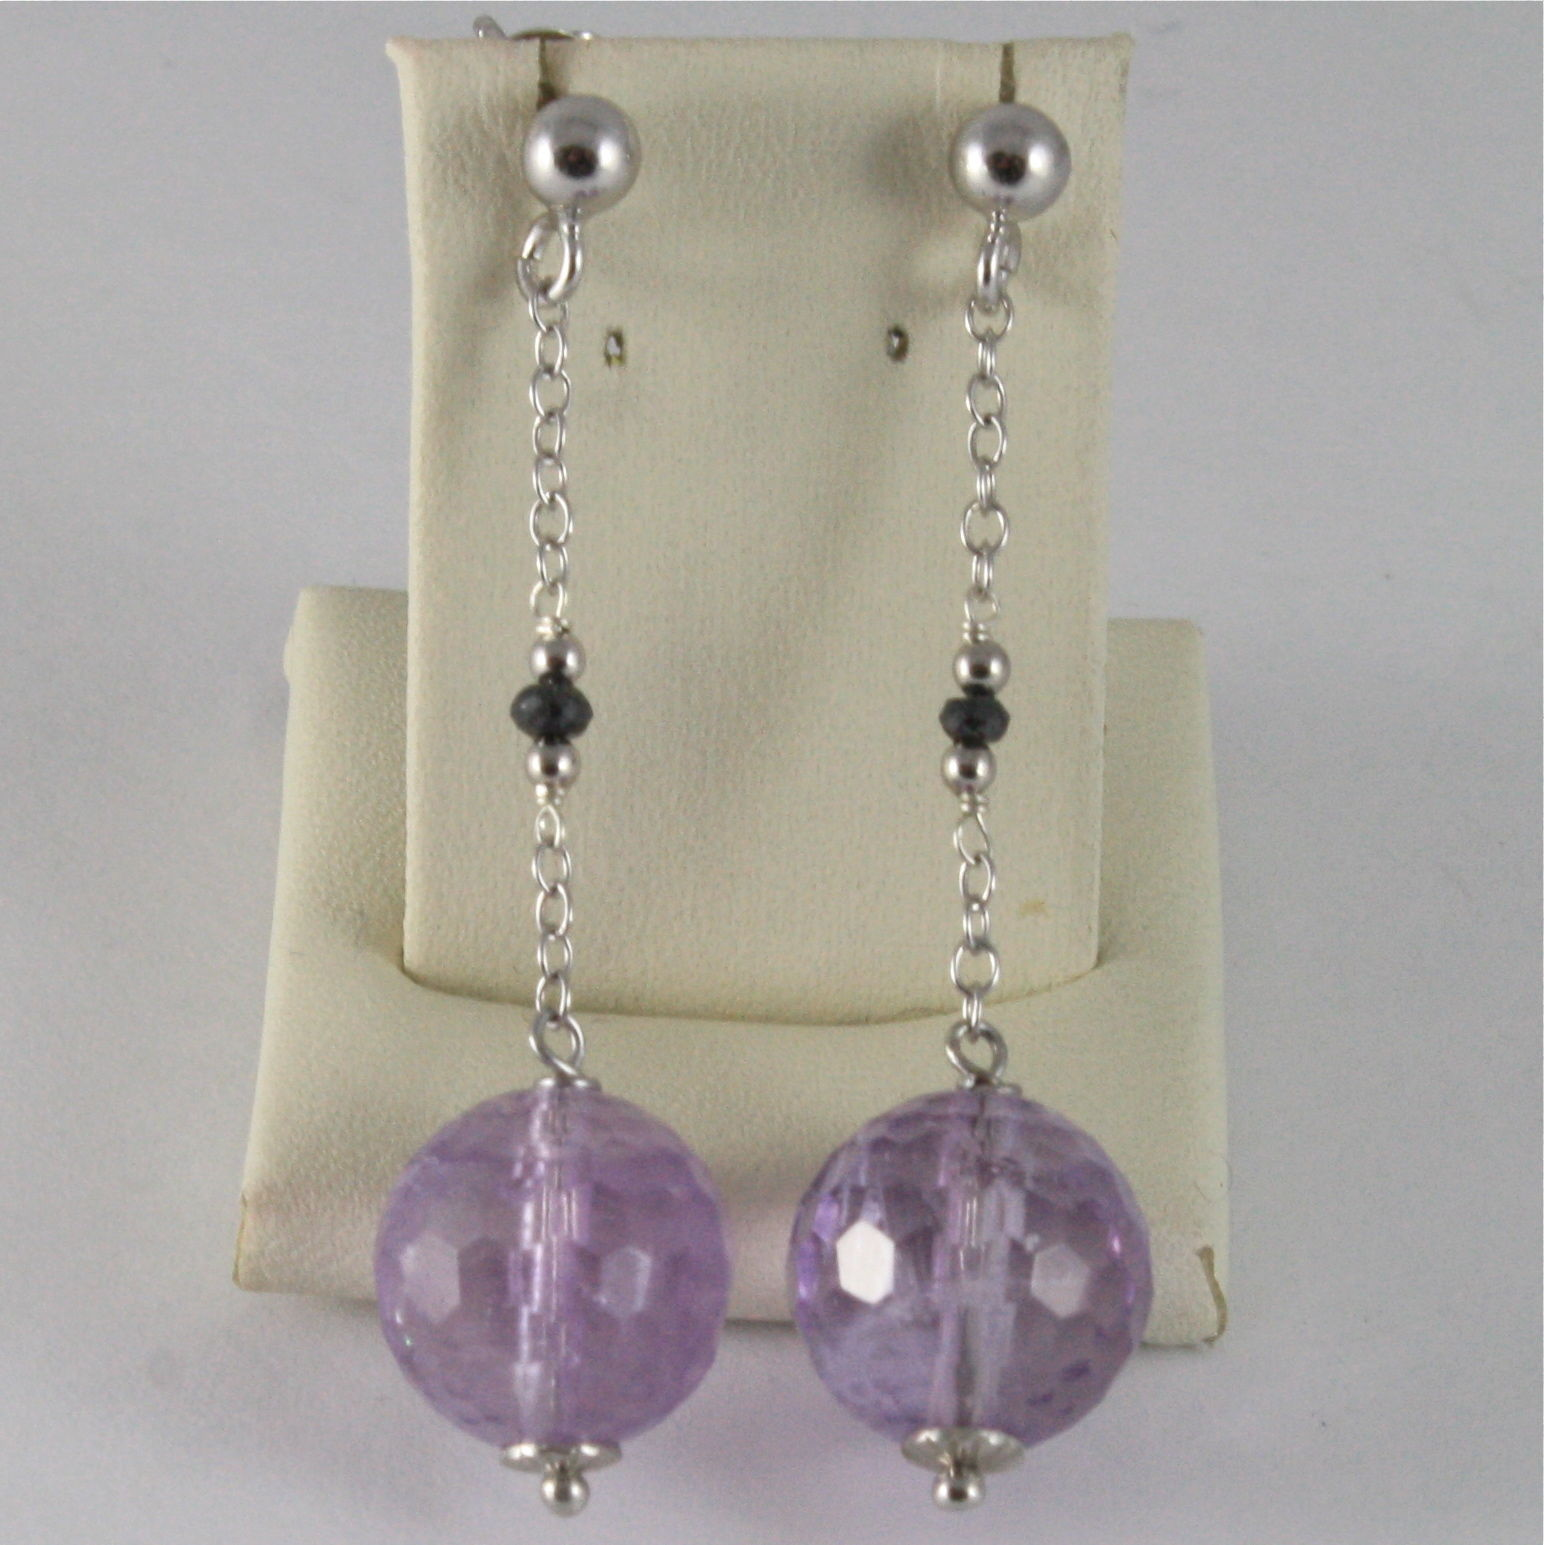 925 SILVER RHODIUM EARRINGS WITH BLACK DIAMONDS, AMETHYST